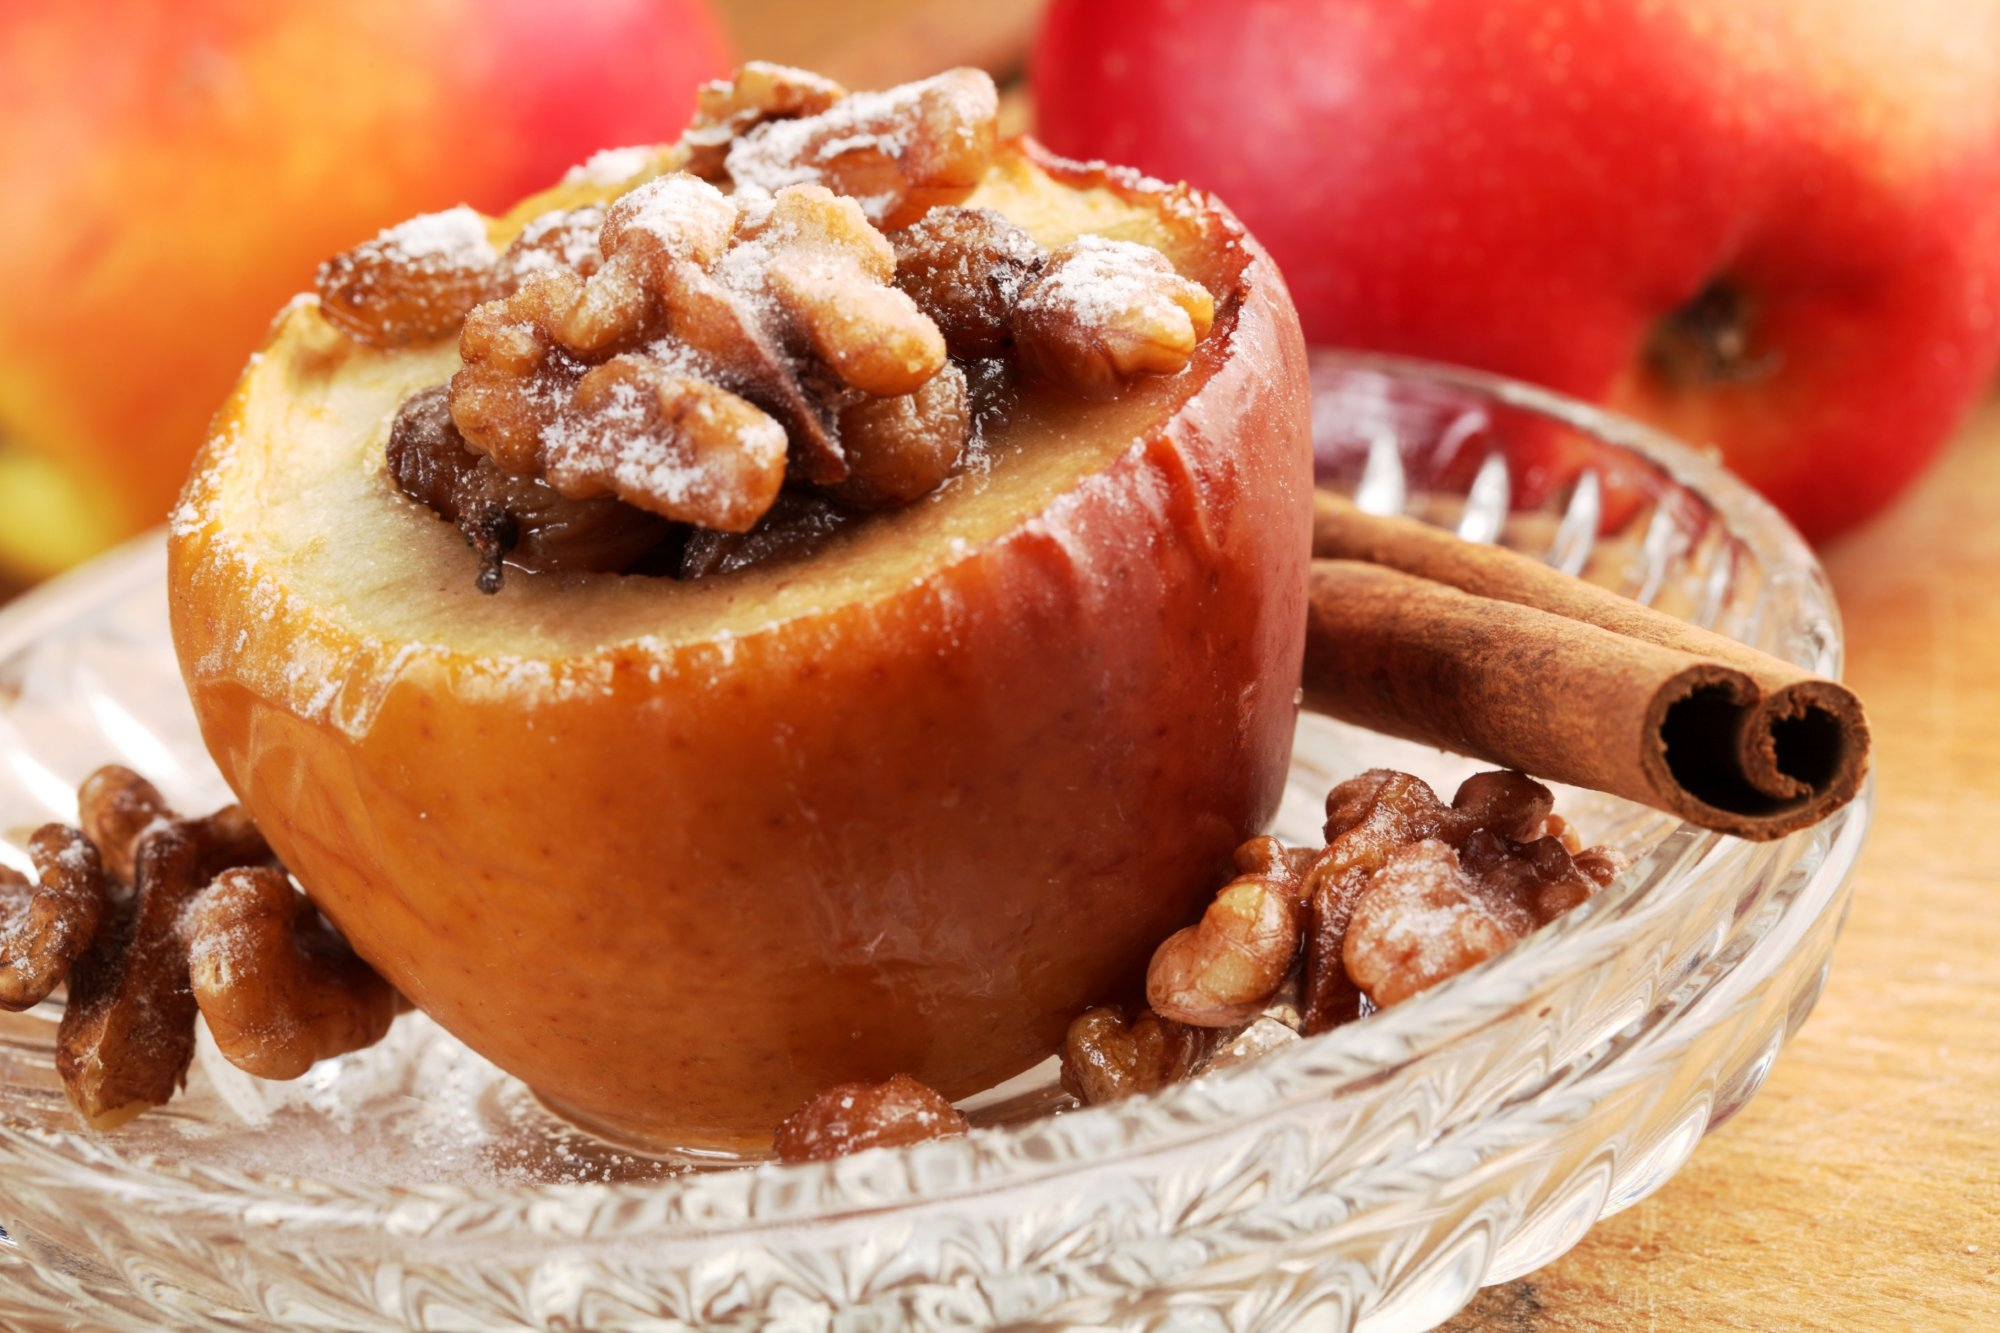 baked_apples_filled_with_nuts_fruit